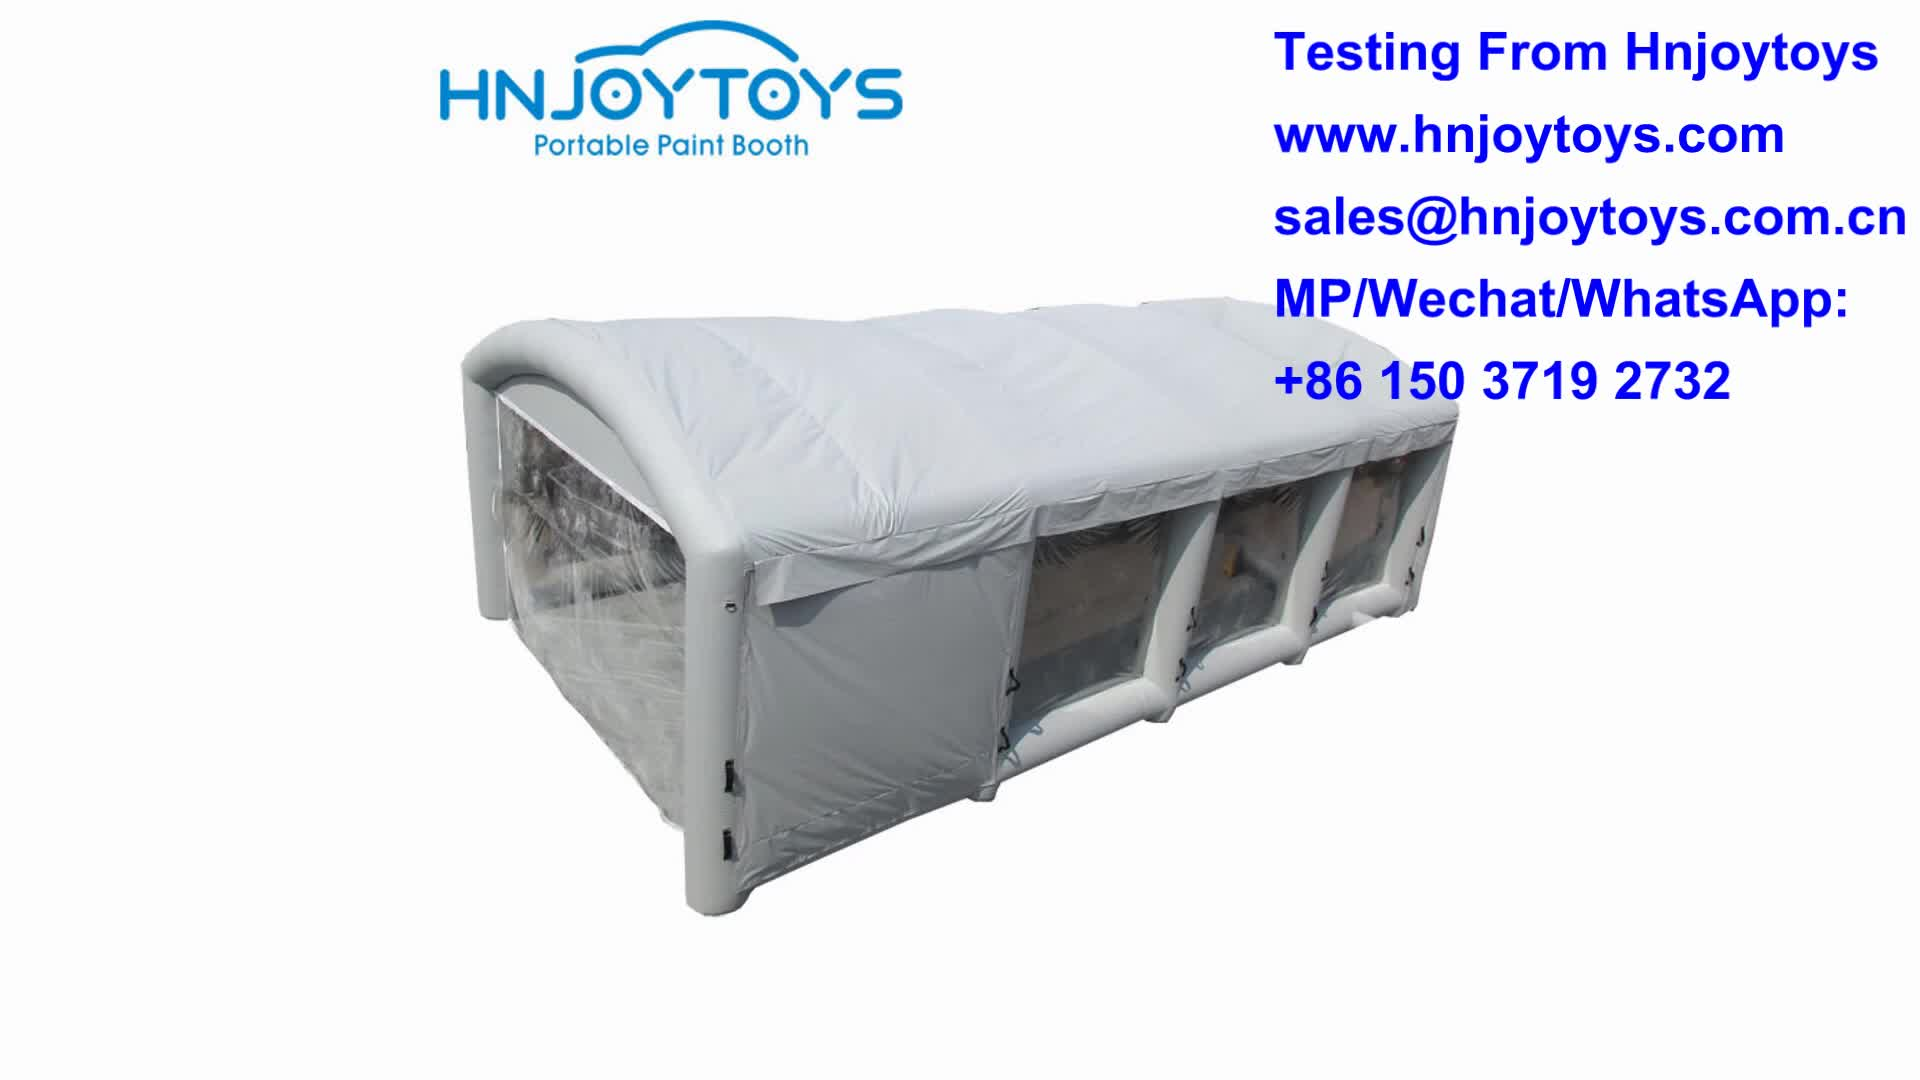 Hot sale Factory directly provide price used car paint booth for sale cheaper